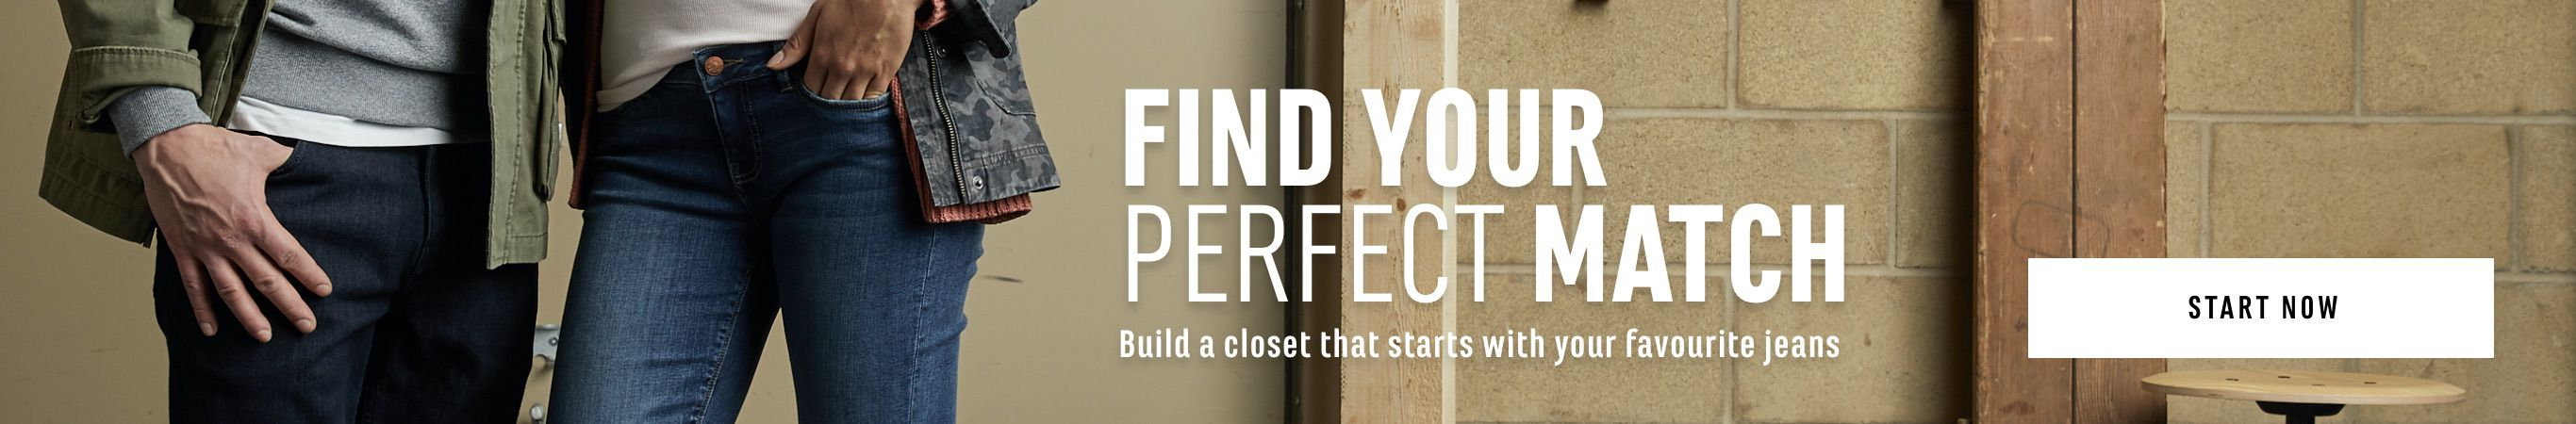 Find Your Perfect Match. Build a closet that starts with your favourite jeans. Shop Now!